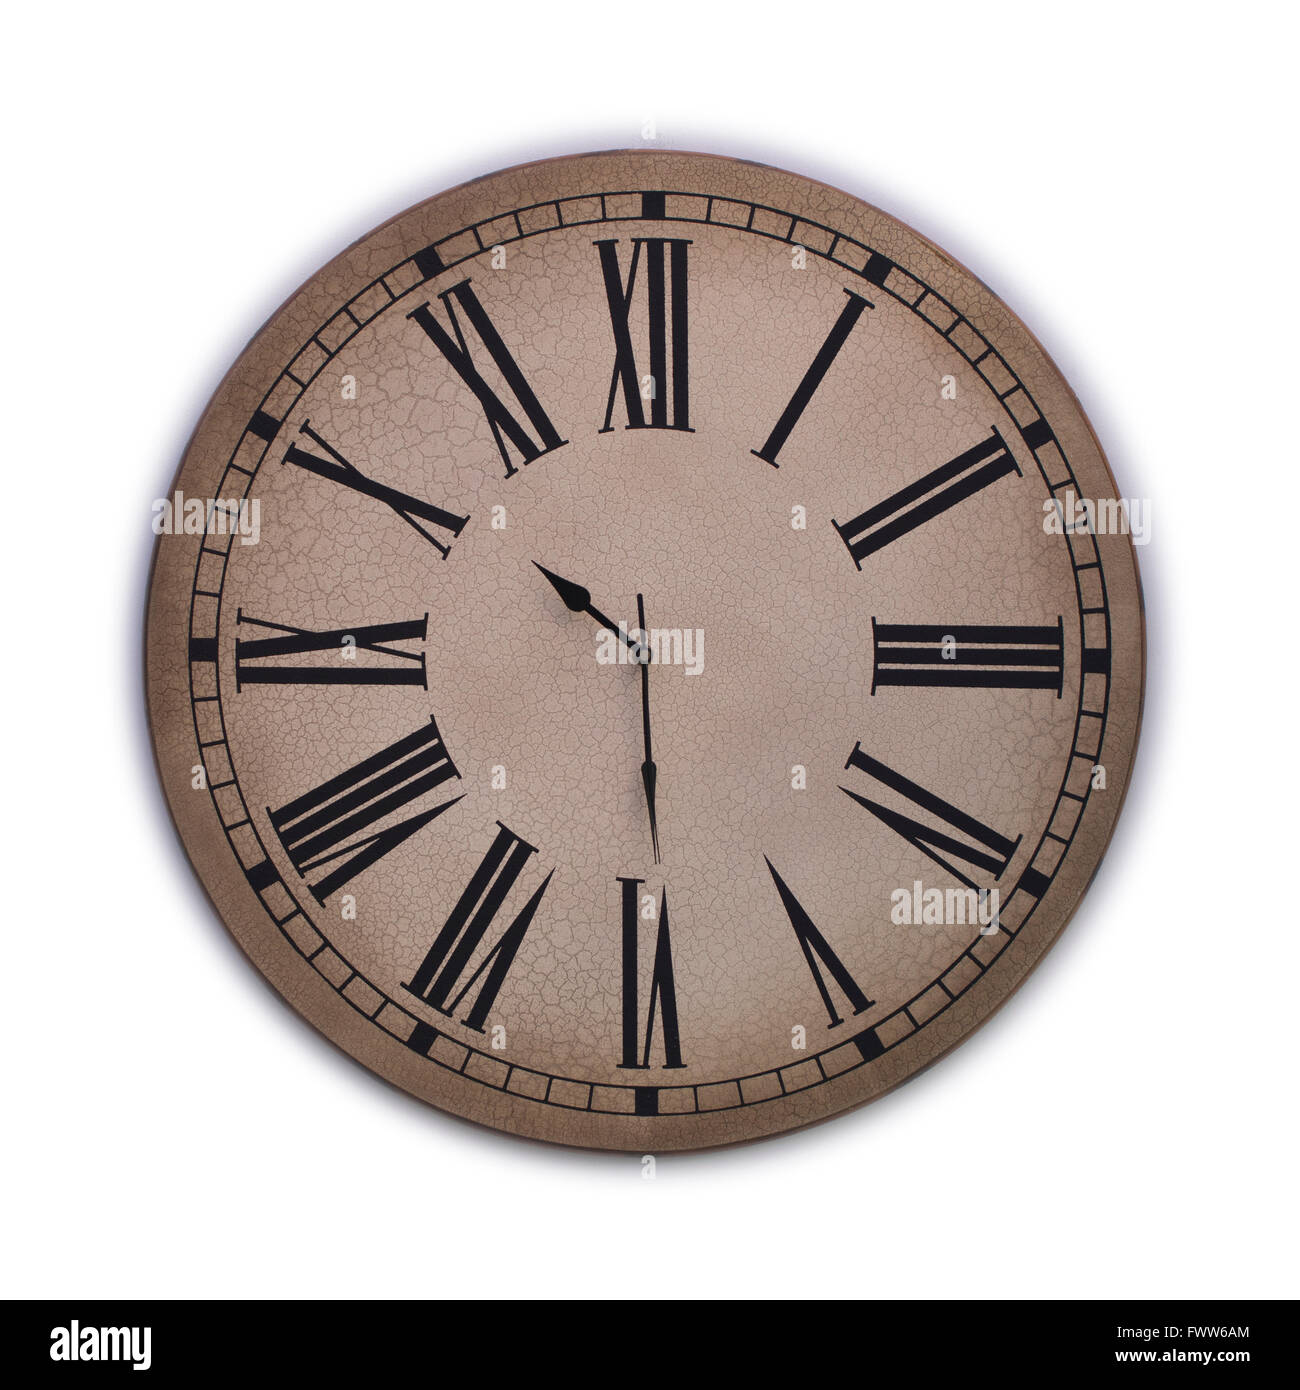 Old clock with roman numerals on a white background - Stock Image